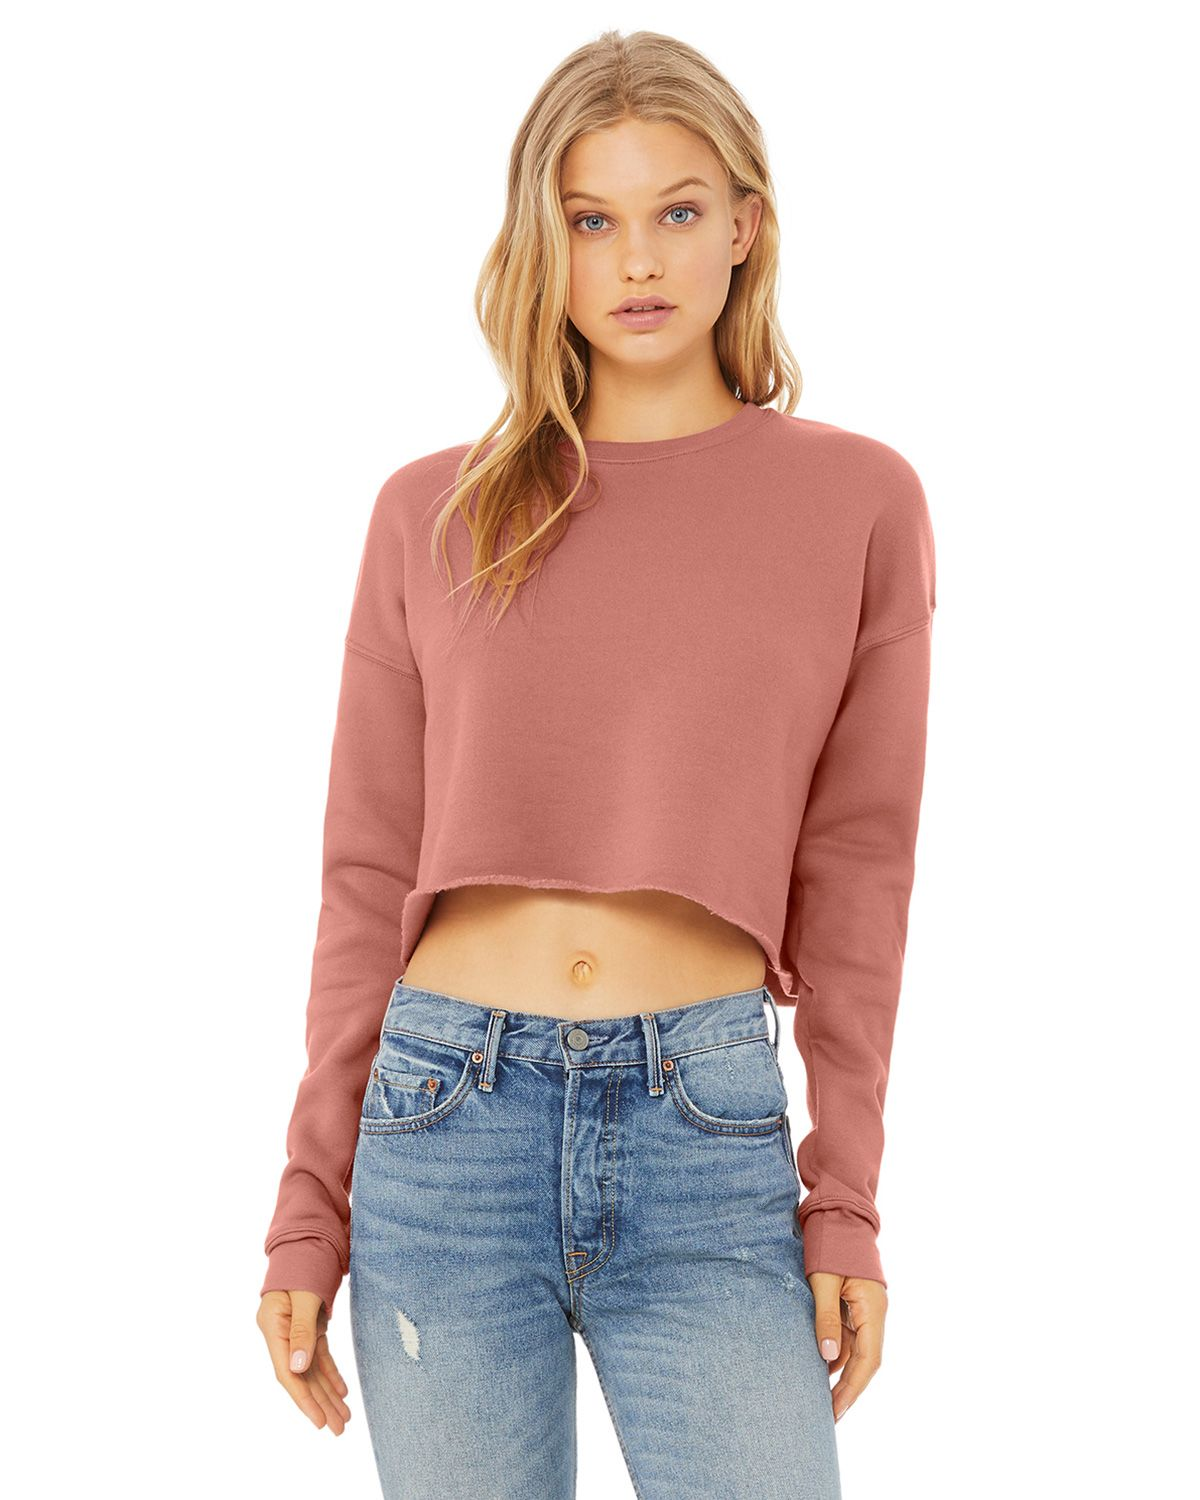 Bella + Canvas B7503 Women's Cropped Crew Fleece - Mauve - S from Bella + Canvas